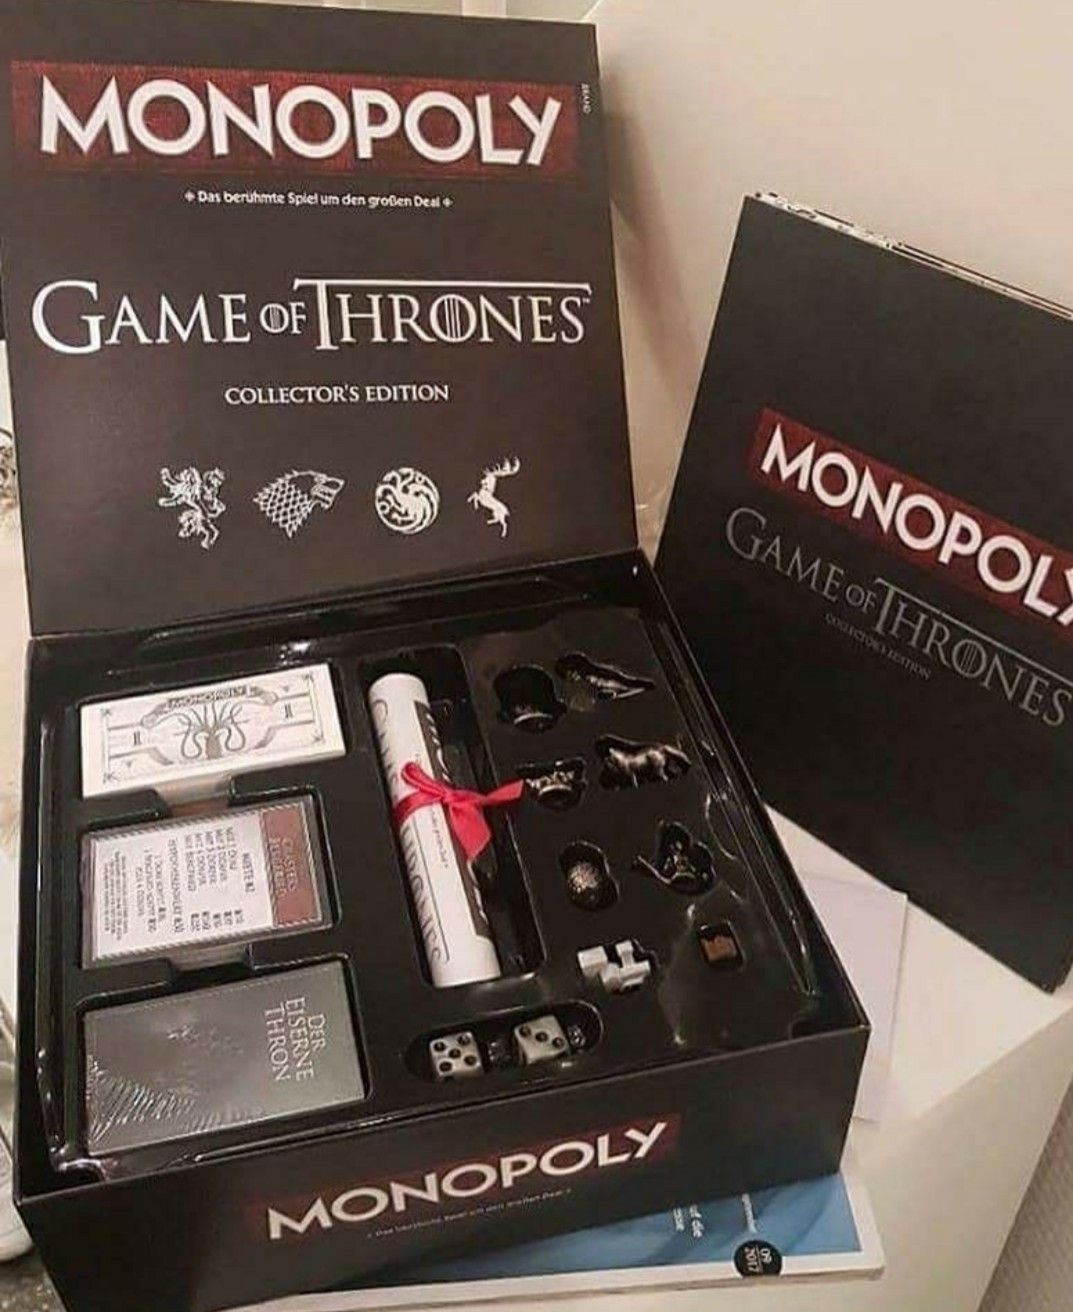 Monopoly And Game Of Thrones Combined Game Of Thrones Merchandise Game Of Thrones Gifts Game Of Thones